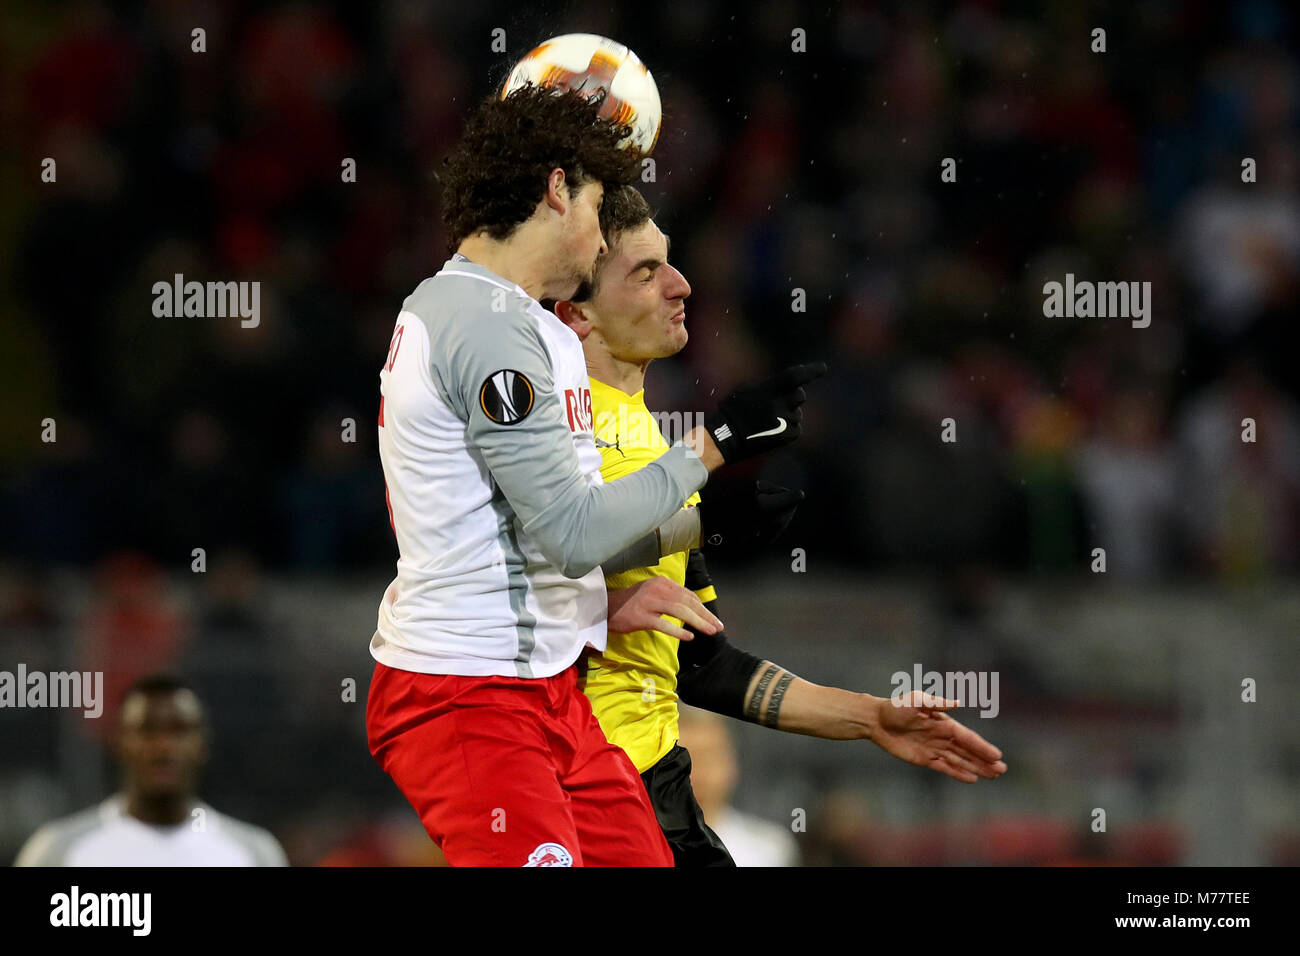 Maximilian Philipp Stock Photos Maximilian Philipp Stock Images  # Andre Kevin Muebles Cordoba